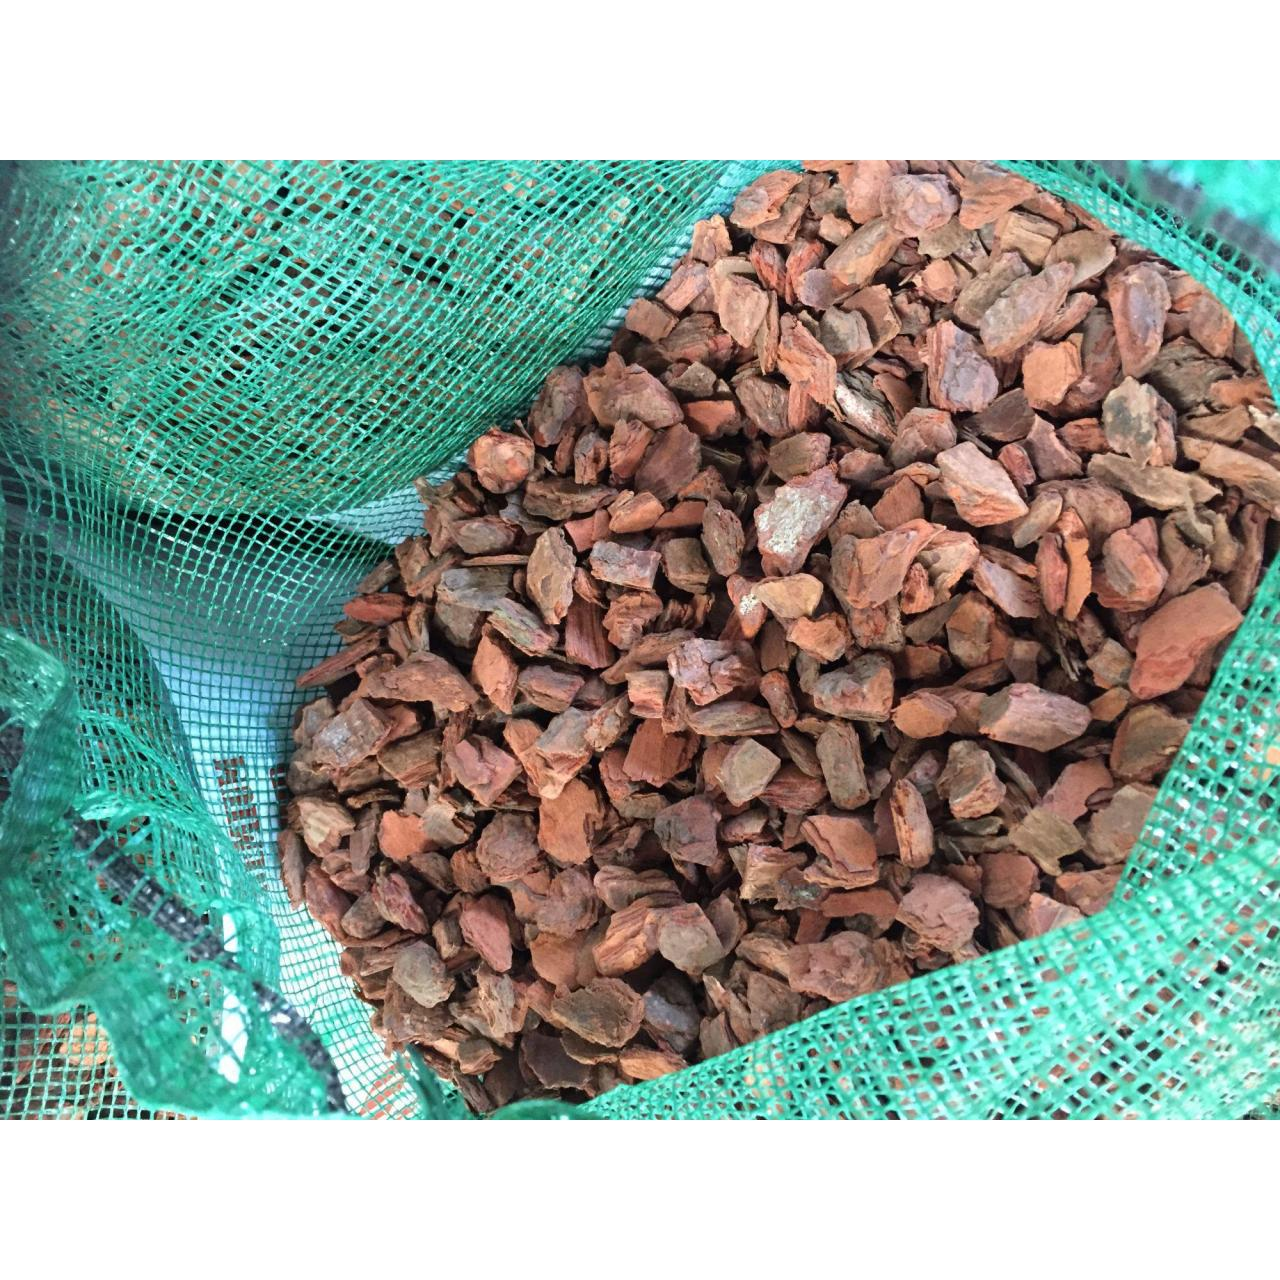 Quality No4 Kiwi Orchid Bark for sale